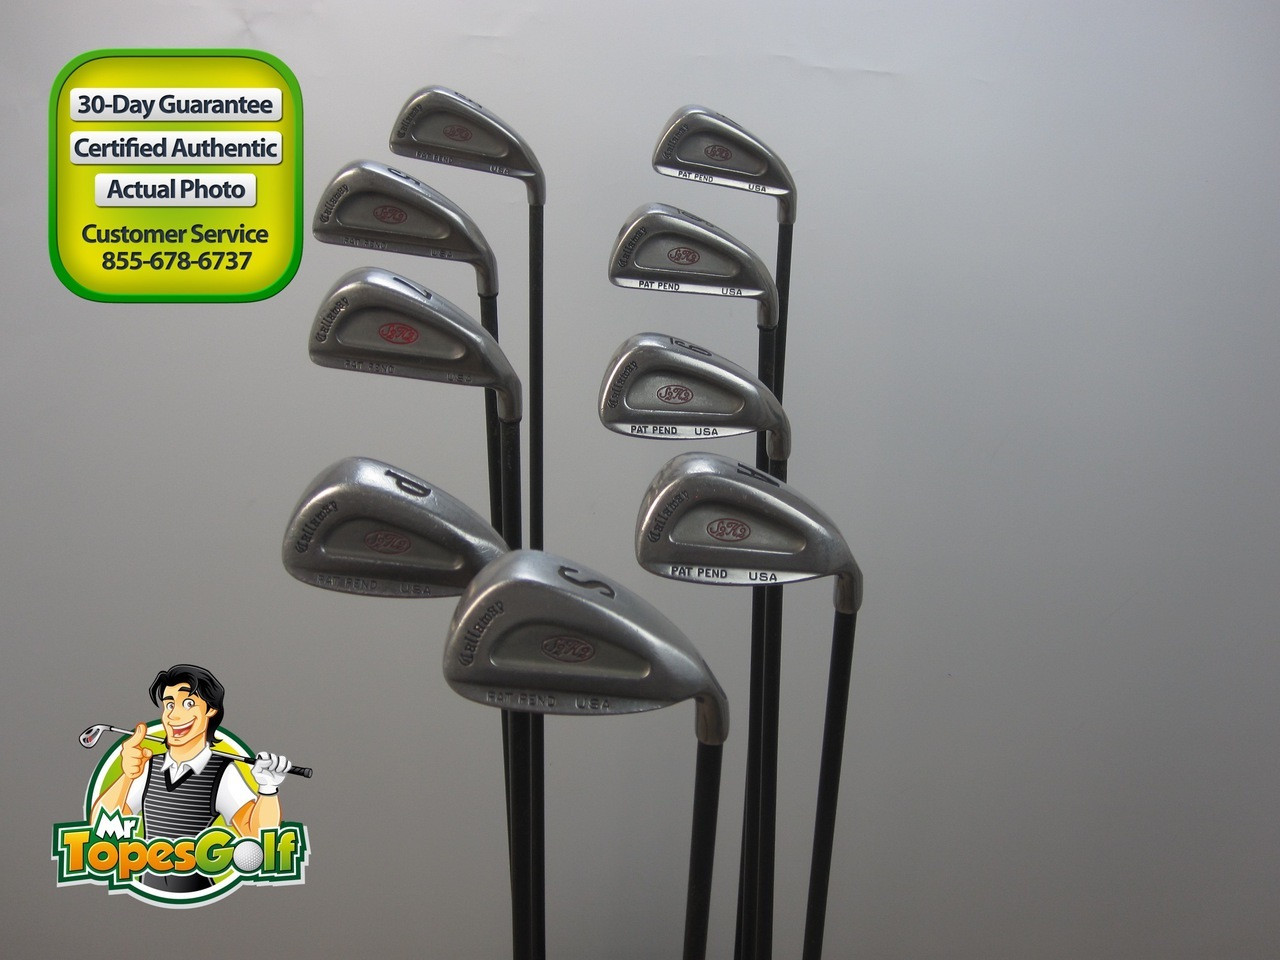 Callaway S2h2 Iron Set Rch 60 Graphite Shaft Regular Flex 13114 Mr